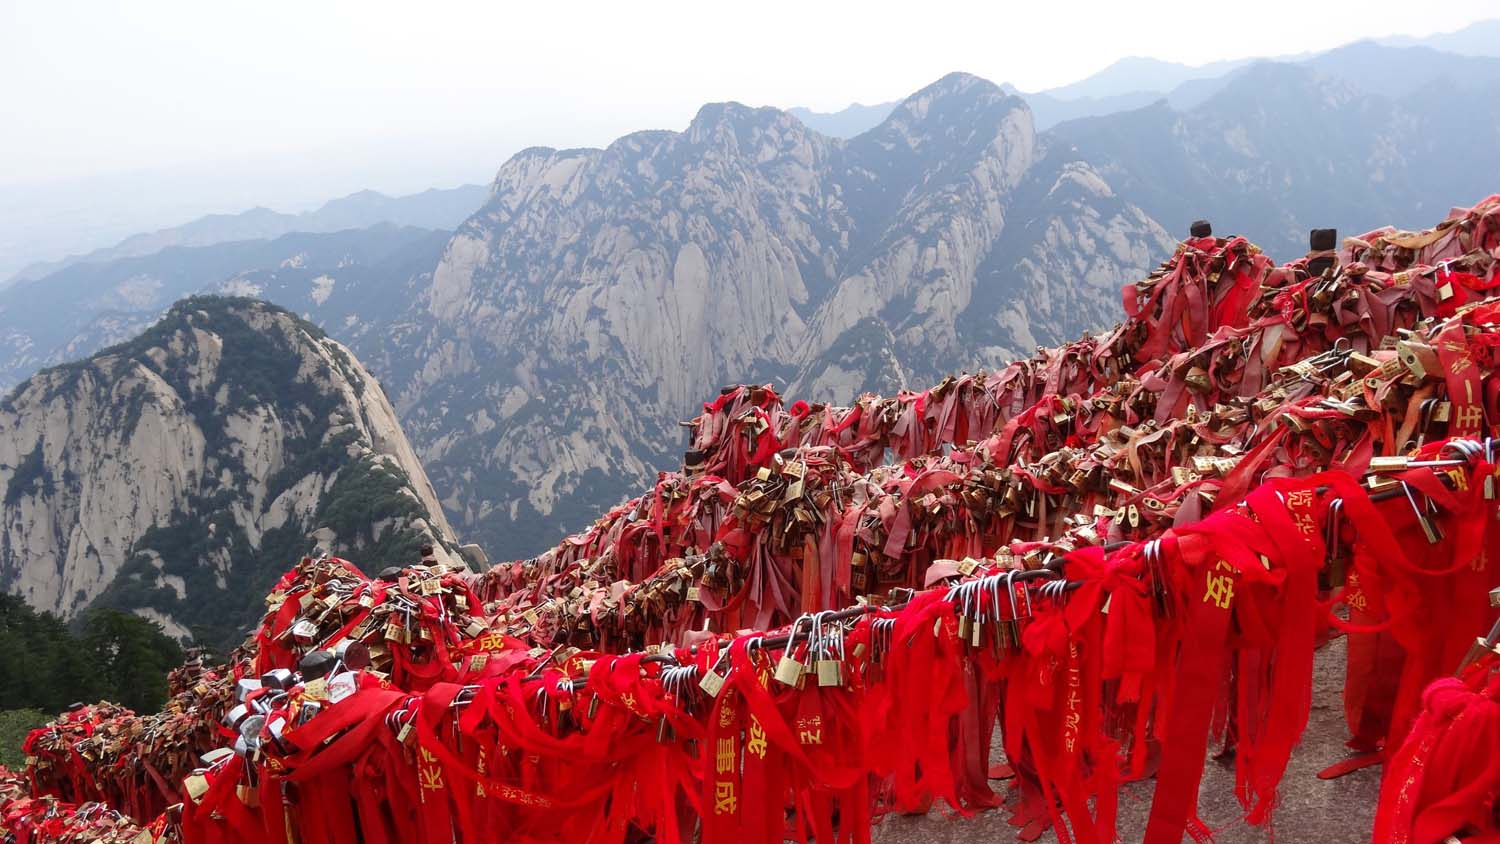 lots of couples leave a padlock with their names engraved in it on the mountain, often together with a red piece of cloth for good luck